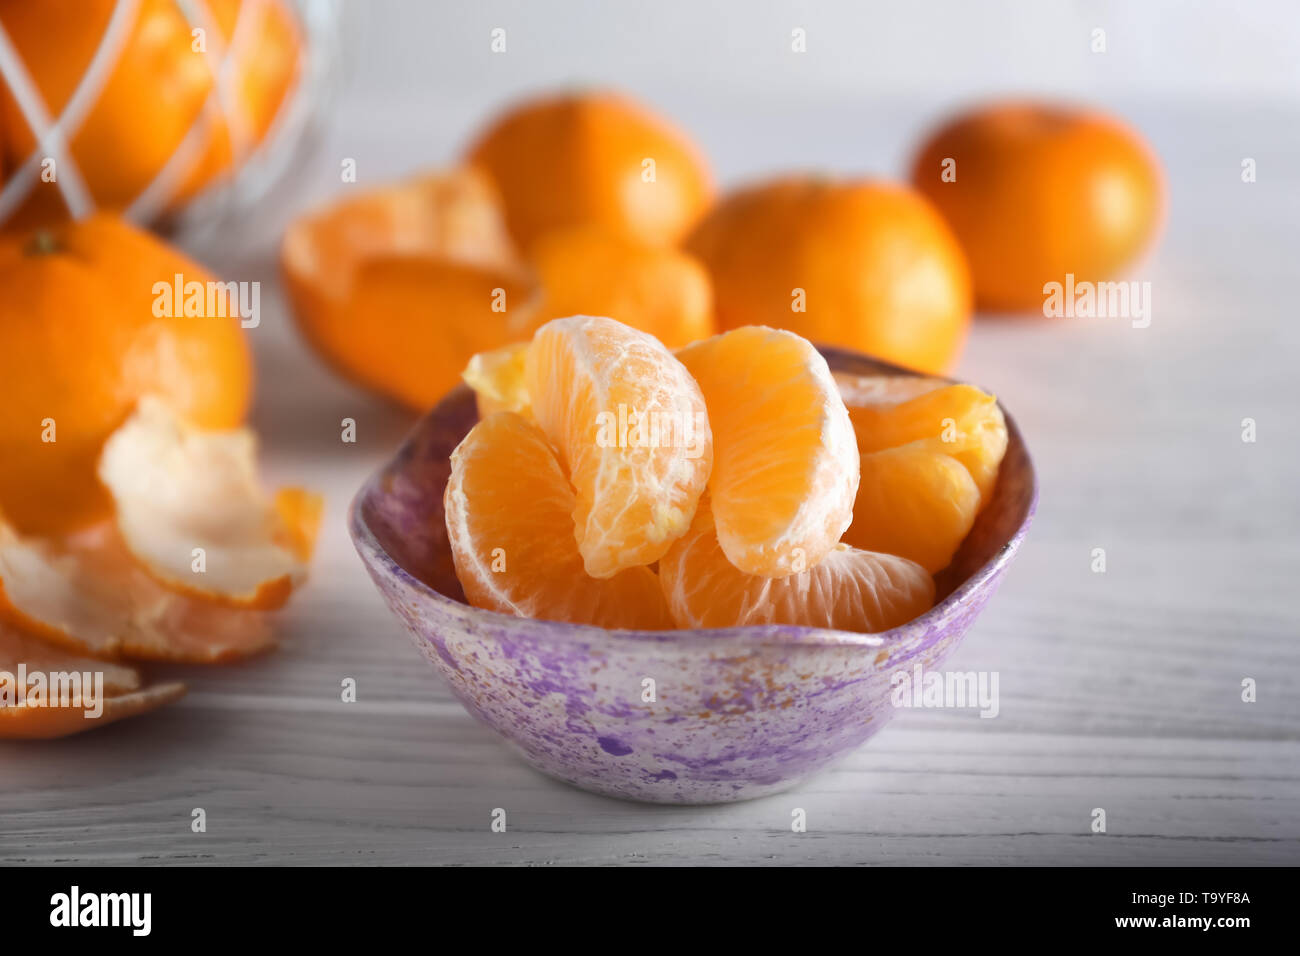 Bowl with ripe tangerine cantles on wooden table - Stock Image